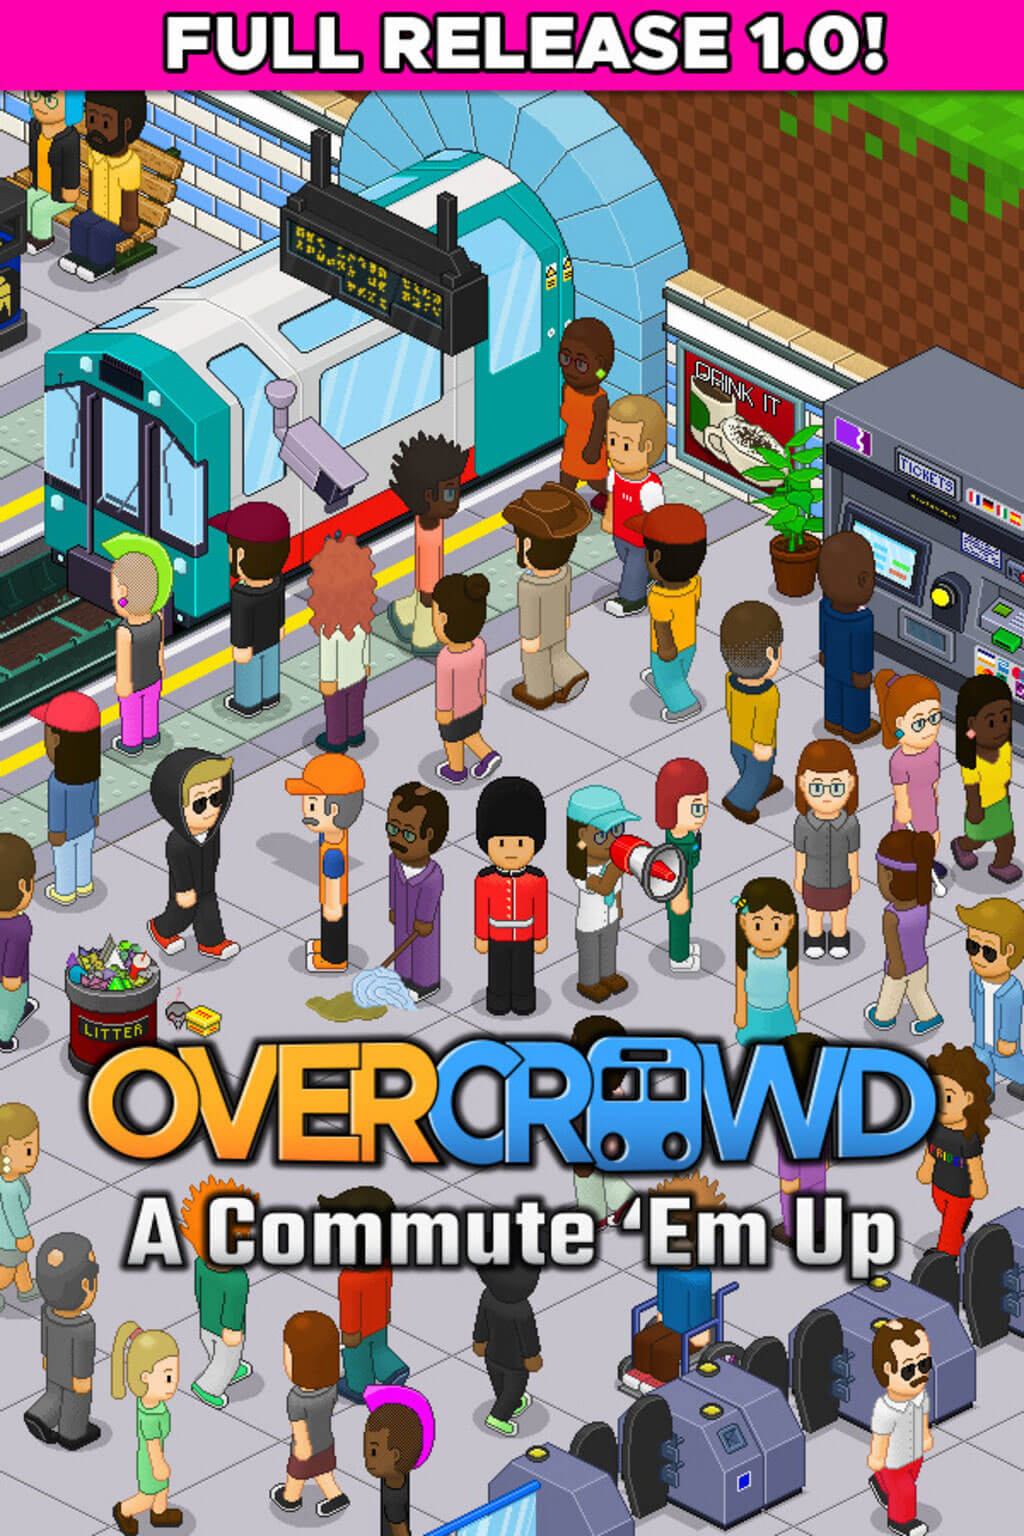 Overcrowd A Commute Em Up game, Download overcrowd game, Download Overcrowd A Commute Em Up game, Download Fit Girl Overcrowd A Commute Em Up, Download low volume overcrowd game, Direct download Overcrowd A Commute Em Up, Download the final version of Overcrowd A Commute Em game  Up, Game Review Overcrowd A Commute Em Up